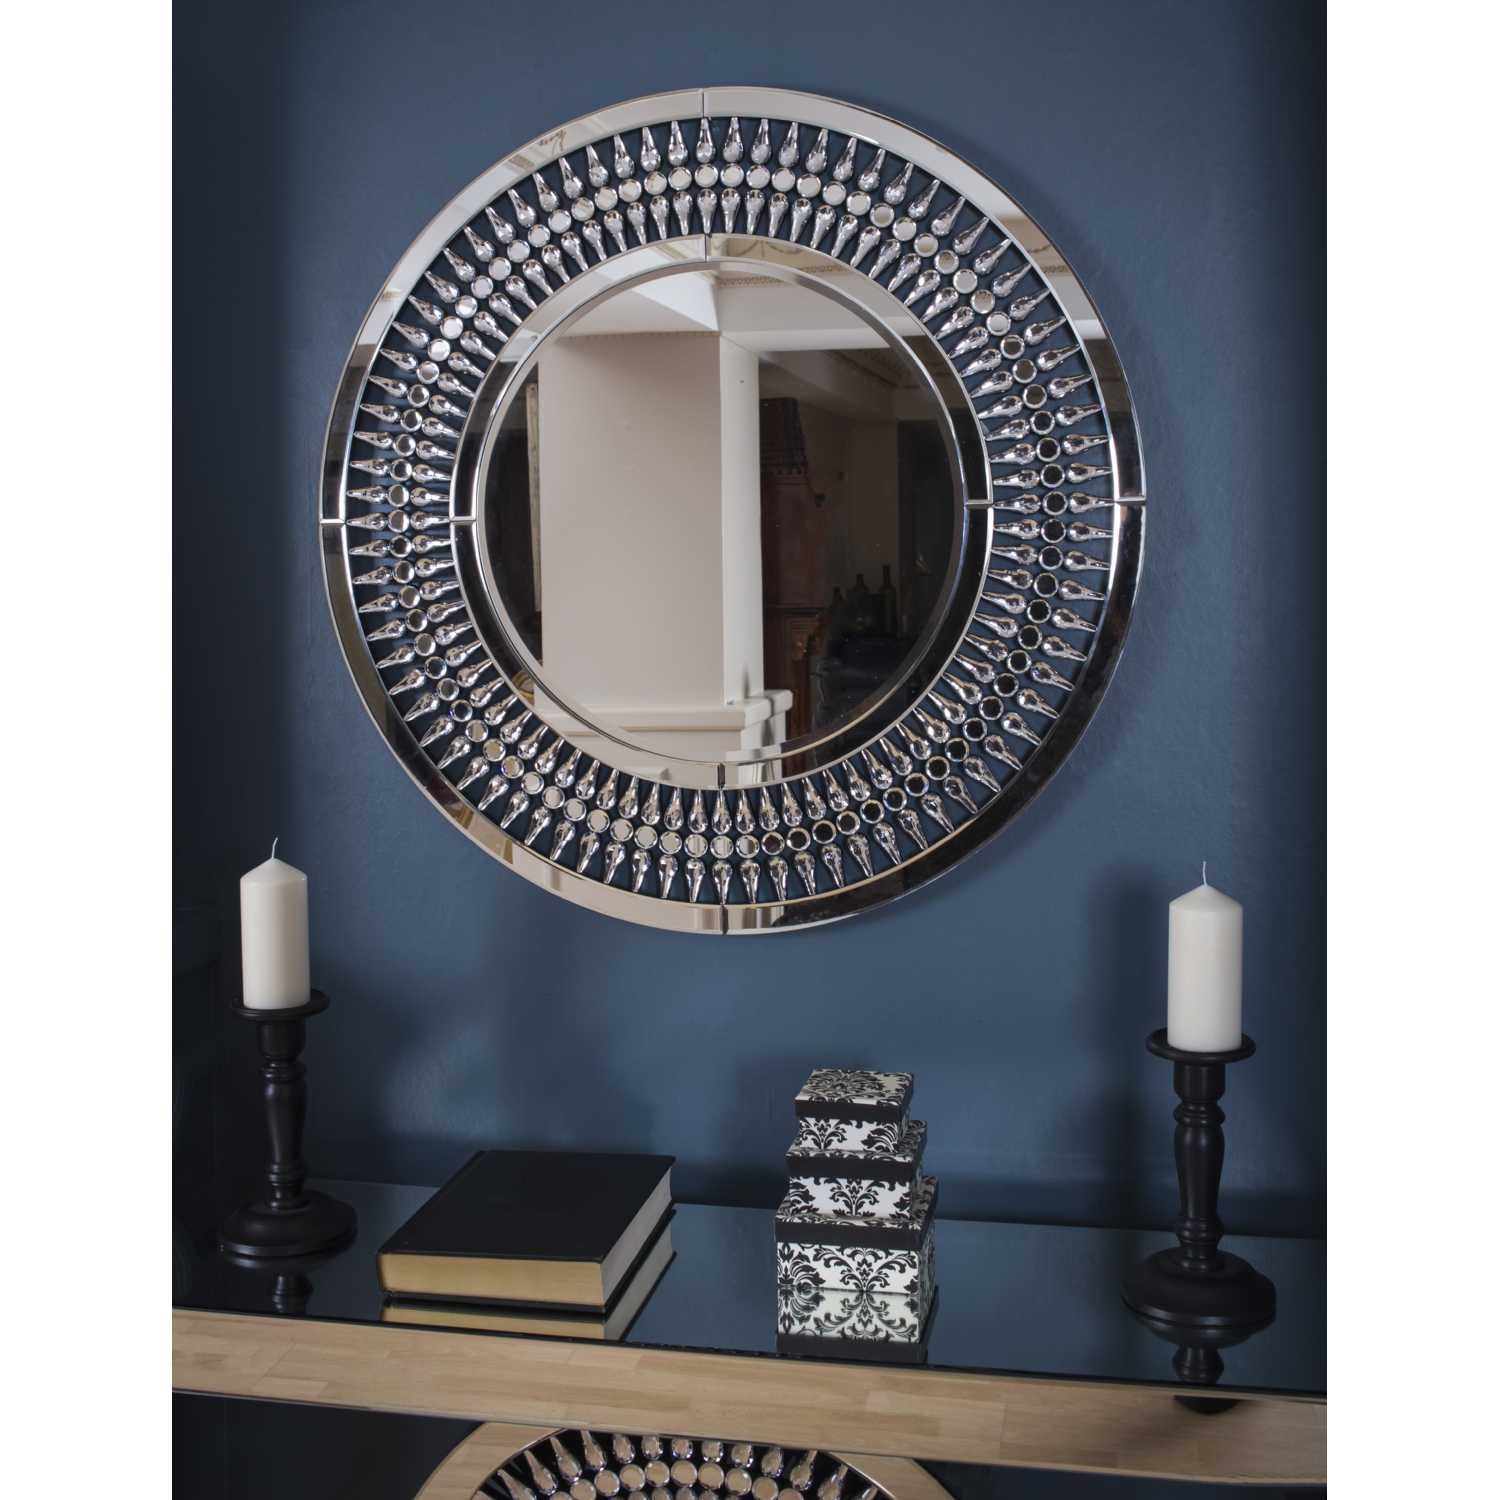 Large Round Mirrored Glass 3ft Crystal Wall Mirror 90cm ...